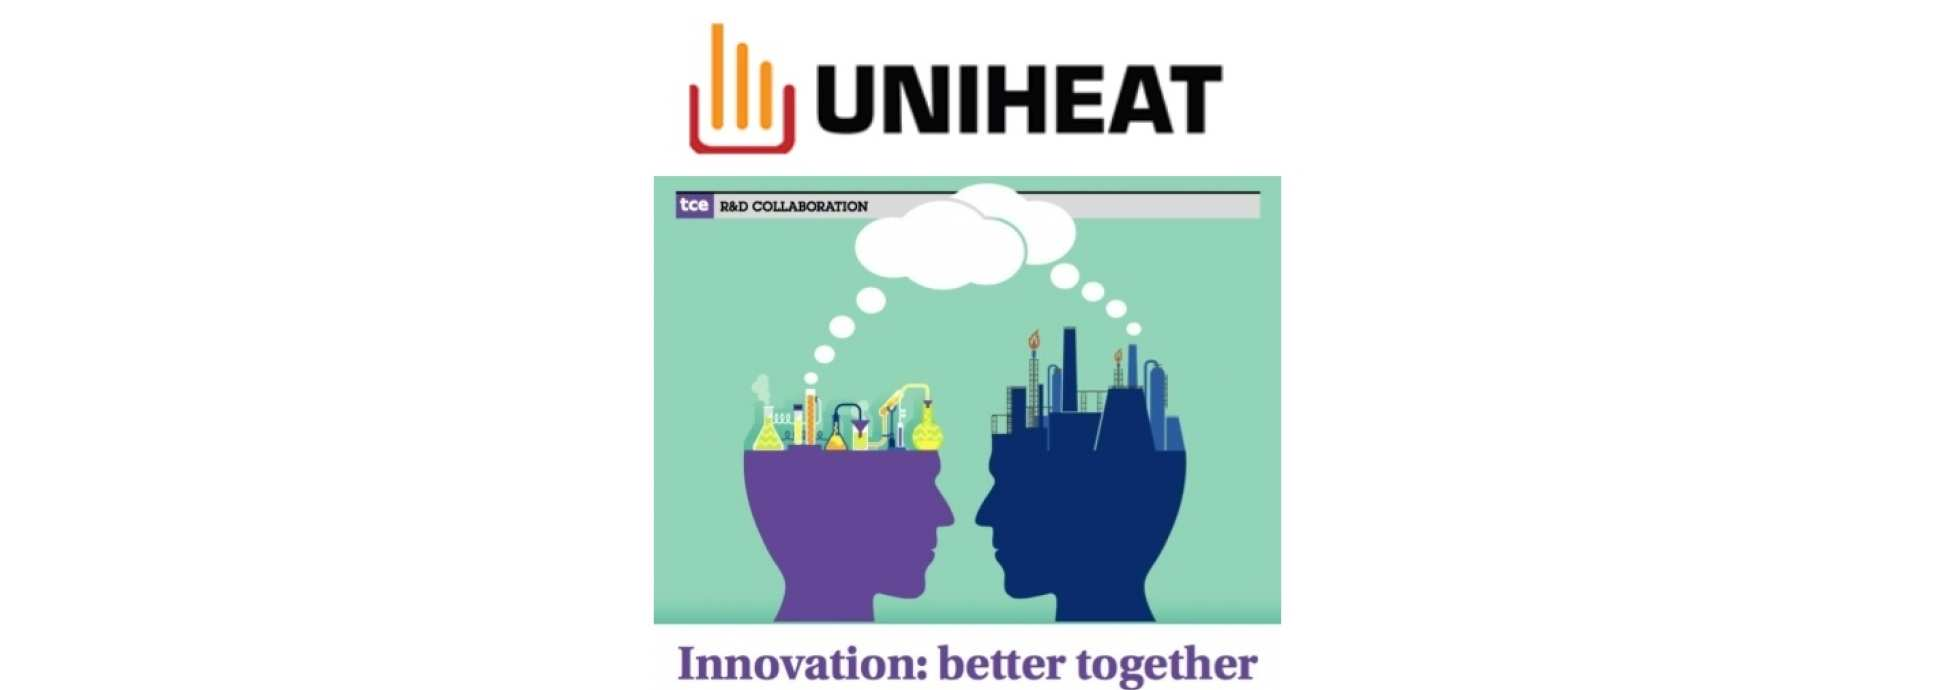 1. UNIHEAT, a unique collaborative research centre integrating research, knowledge transfer and technology transfer inorder to improve energy efficiency in oil refining.